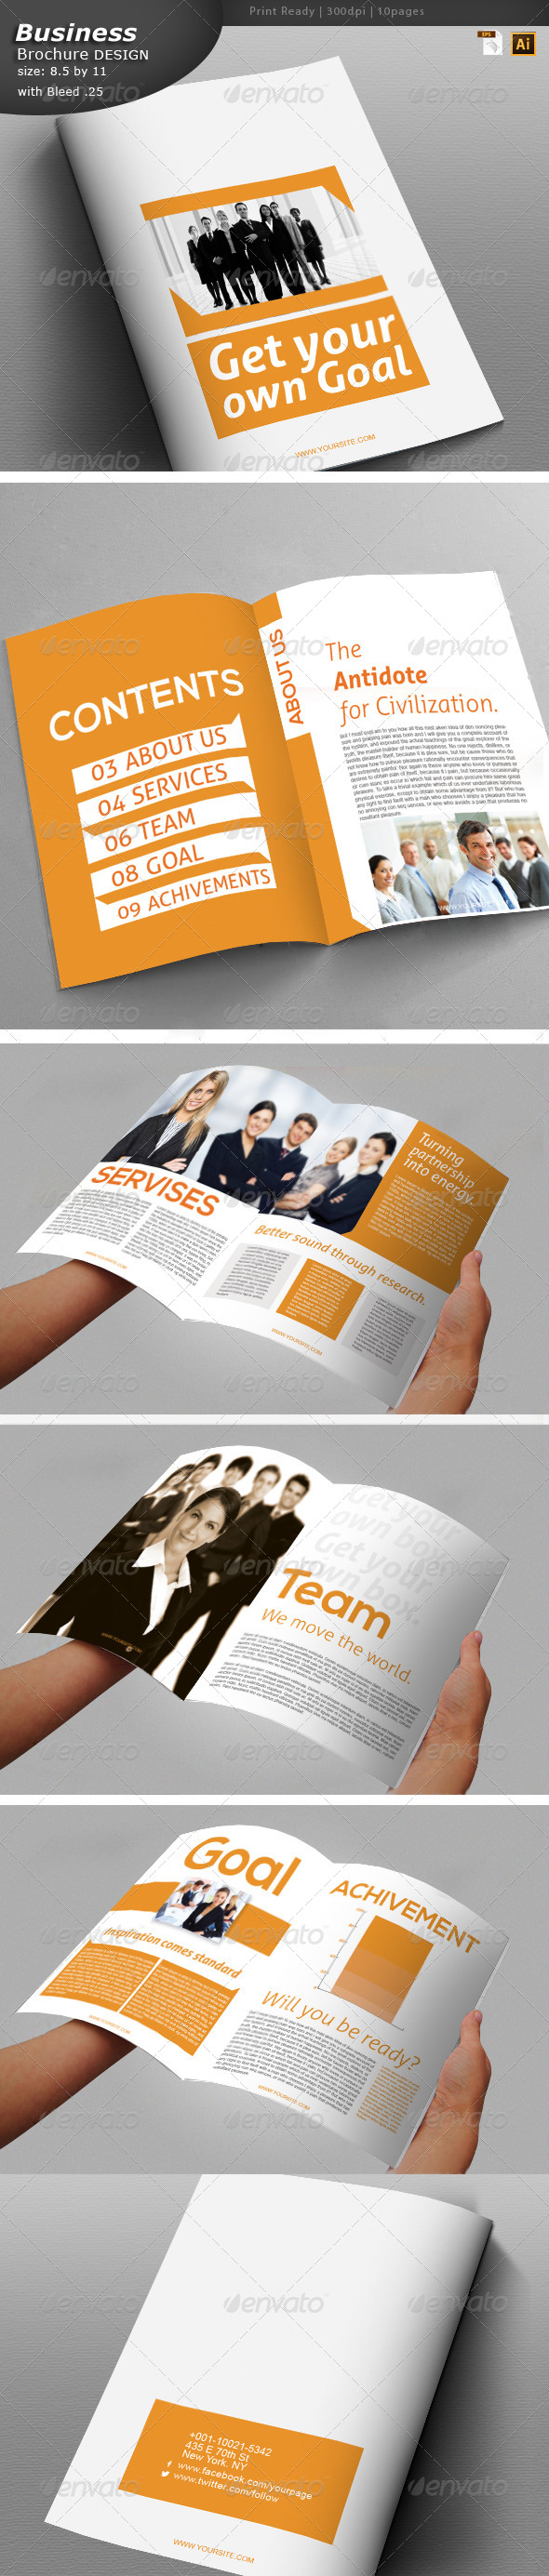 Office Brochure Design  - Brochures Print Templates